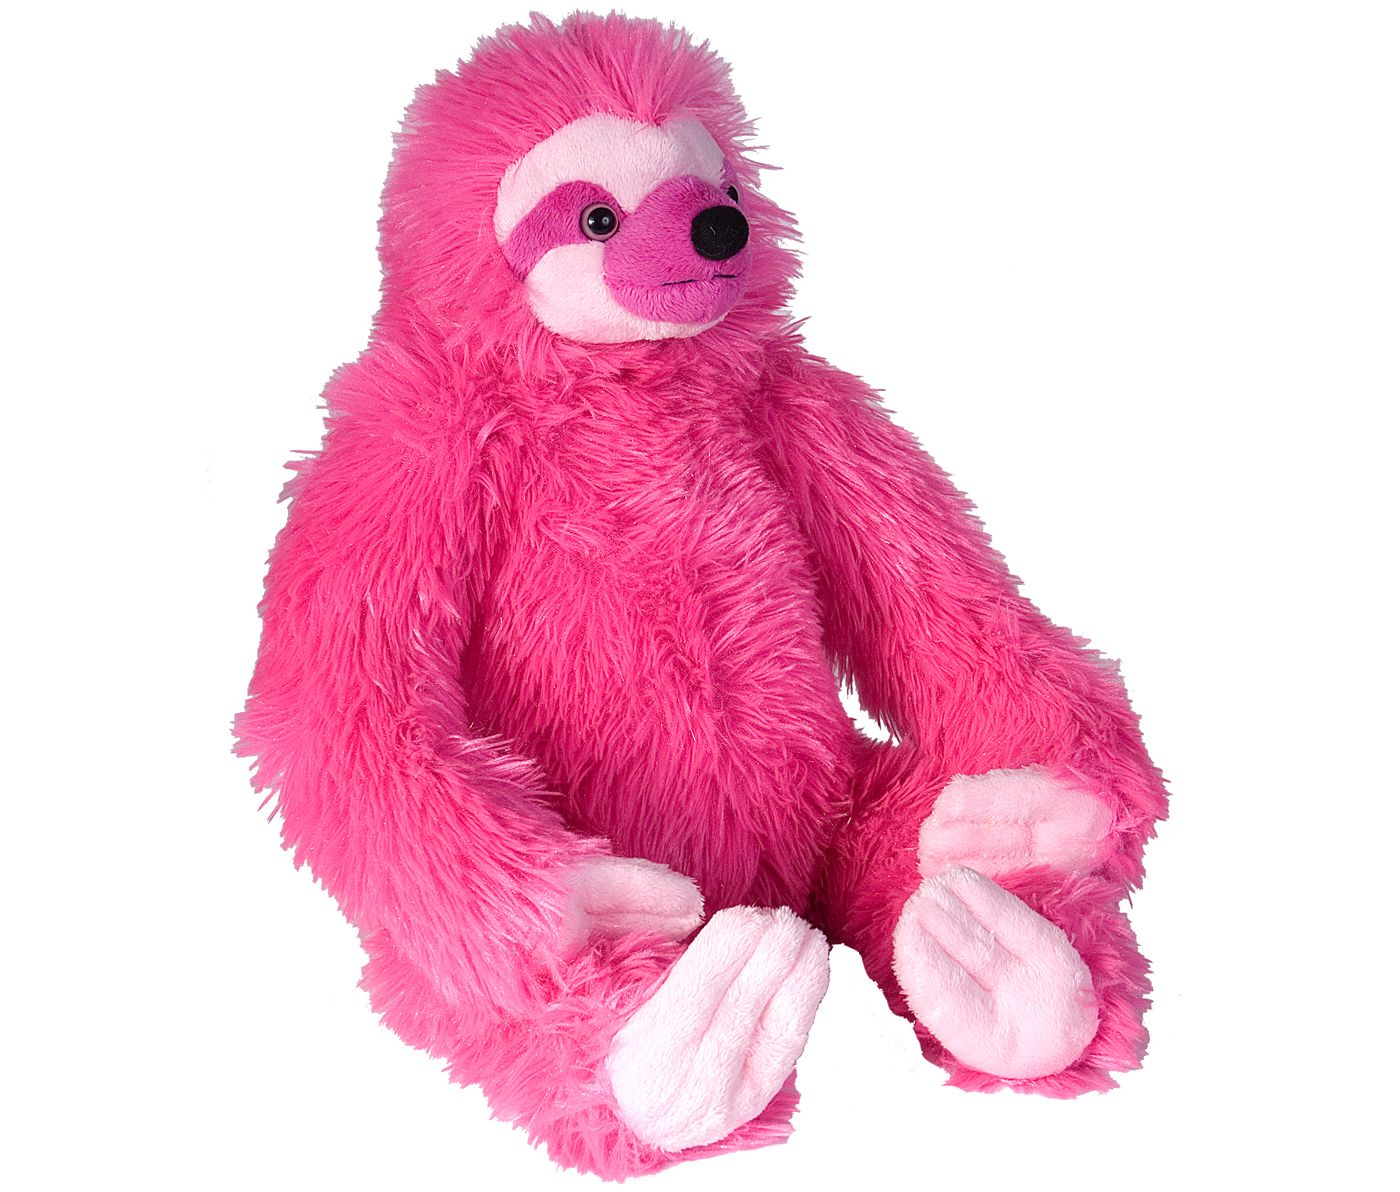 Wild Republic Pink Sloth Stuffed Animal